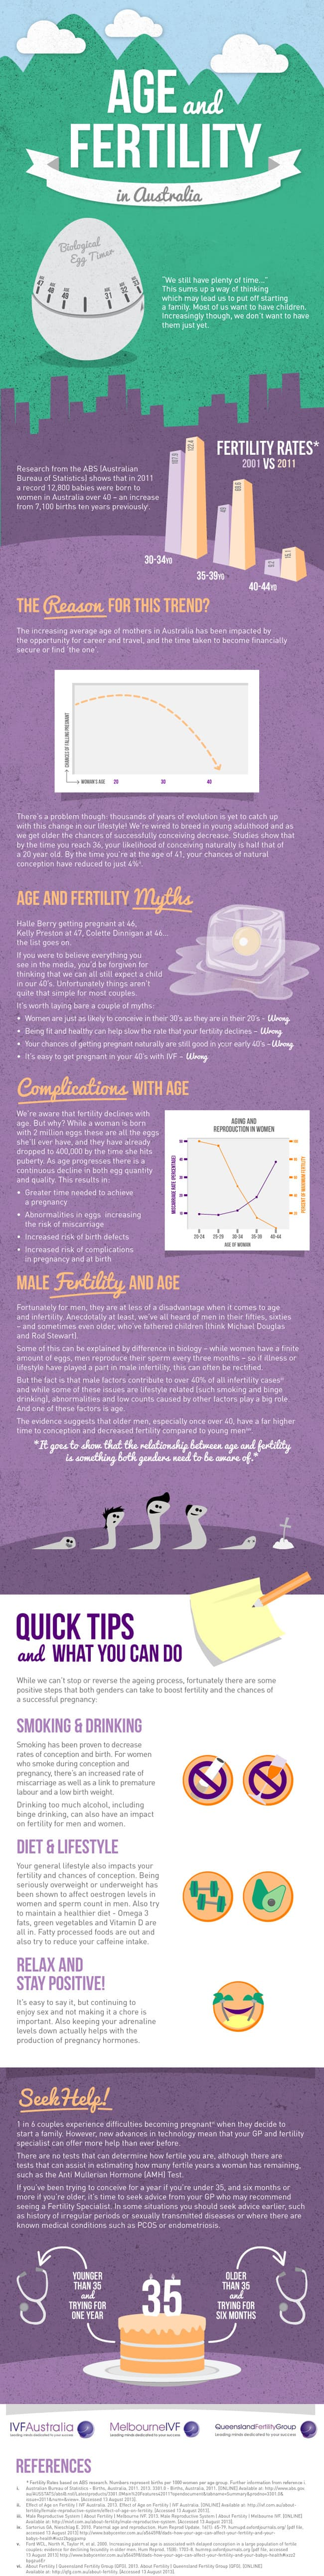 Fertility And Age in Australian Women – The Statistics and The Stories